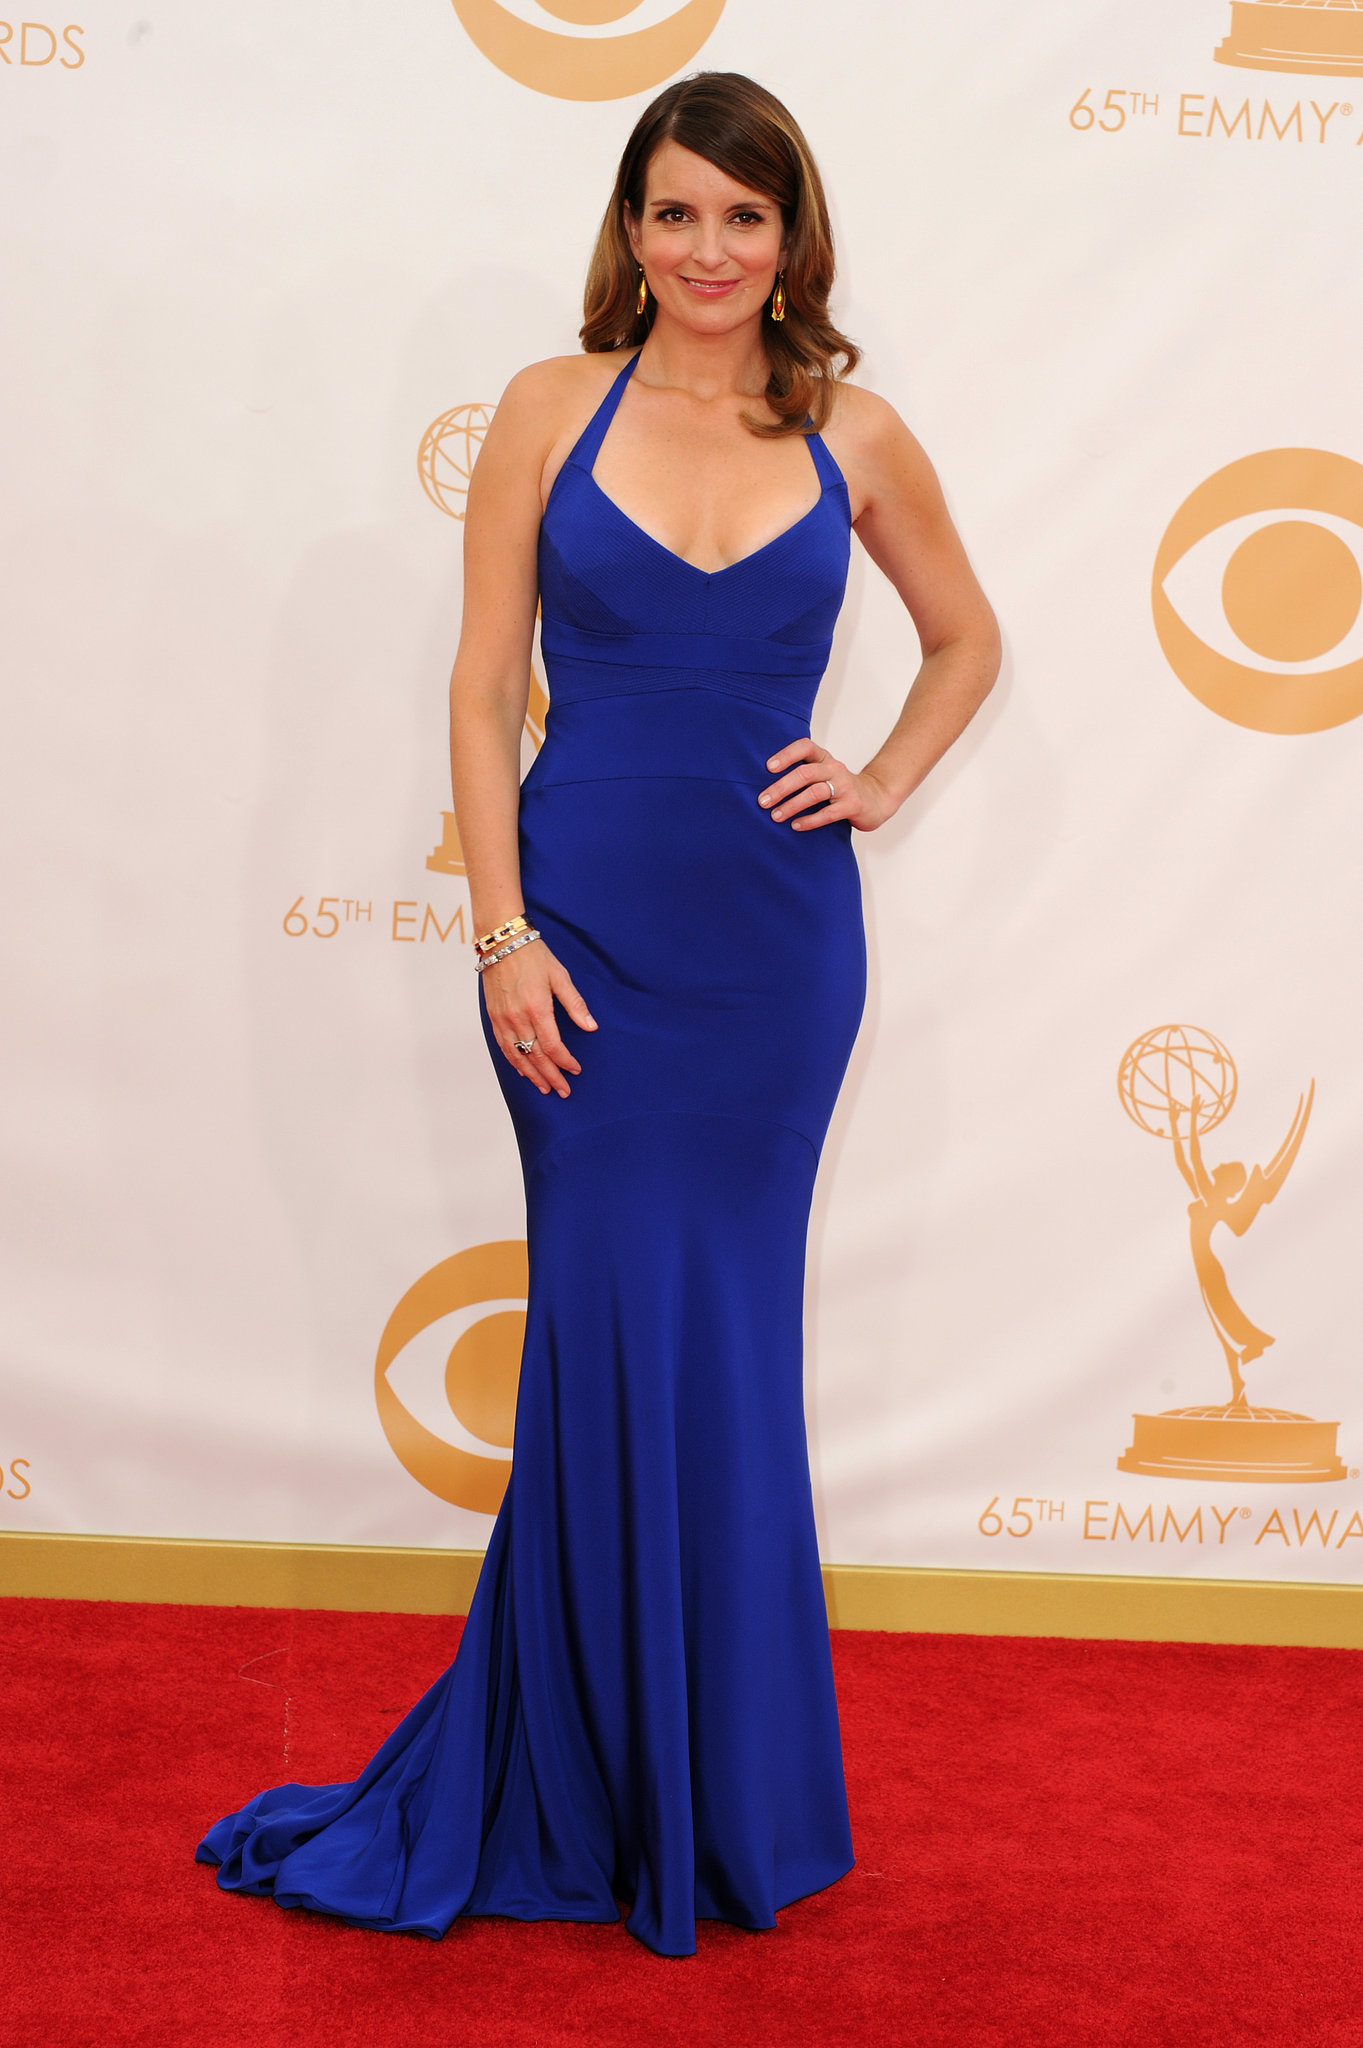 Tina Fey stepped out for the 2013 Emmys.